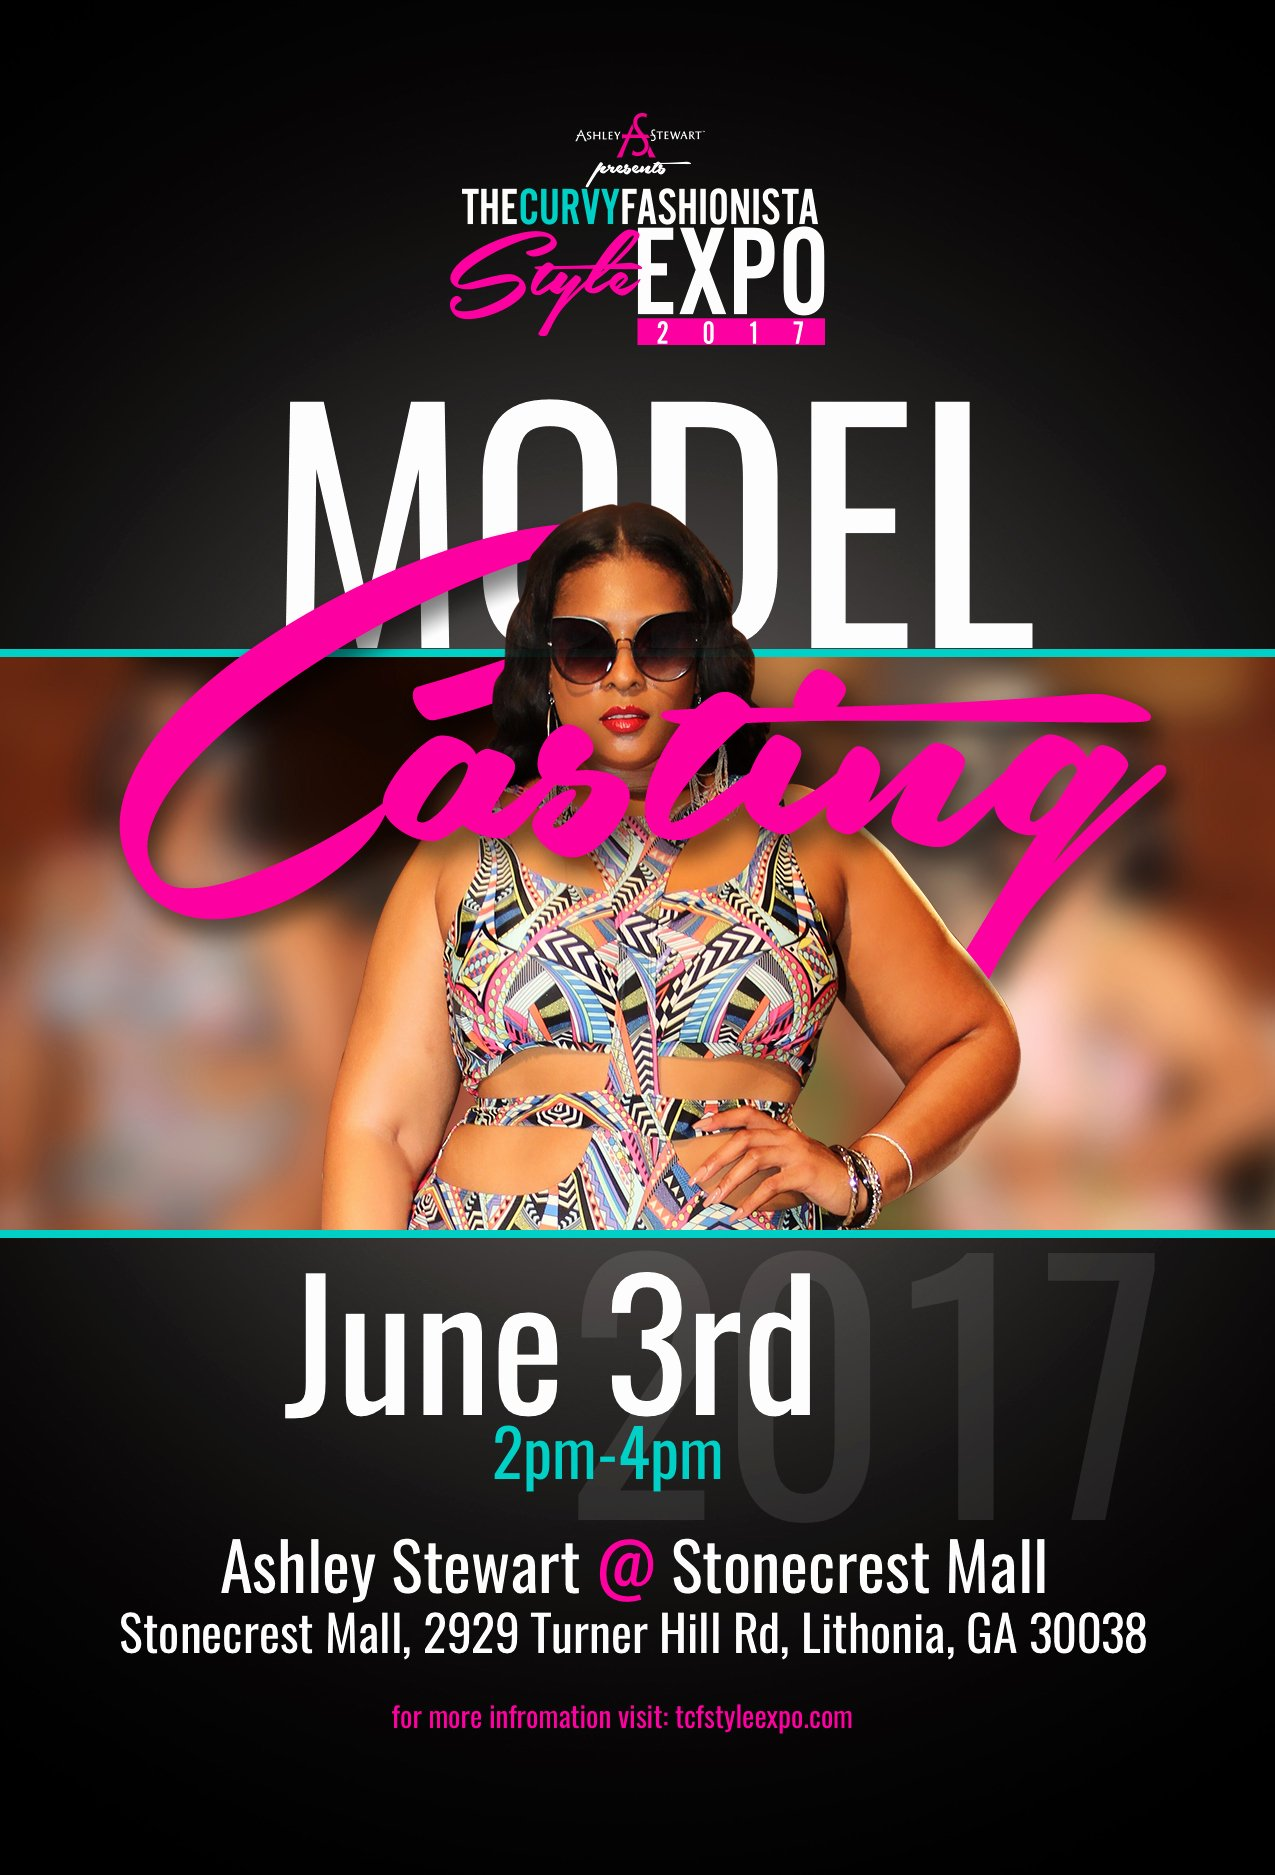 tcfstyle expo model casting call